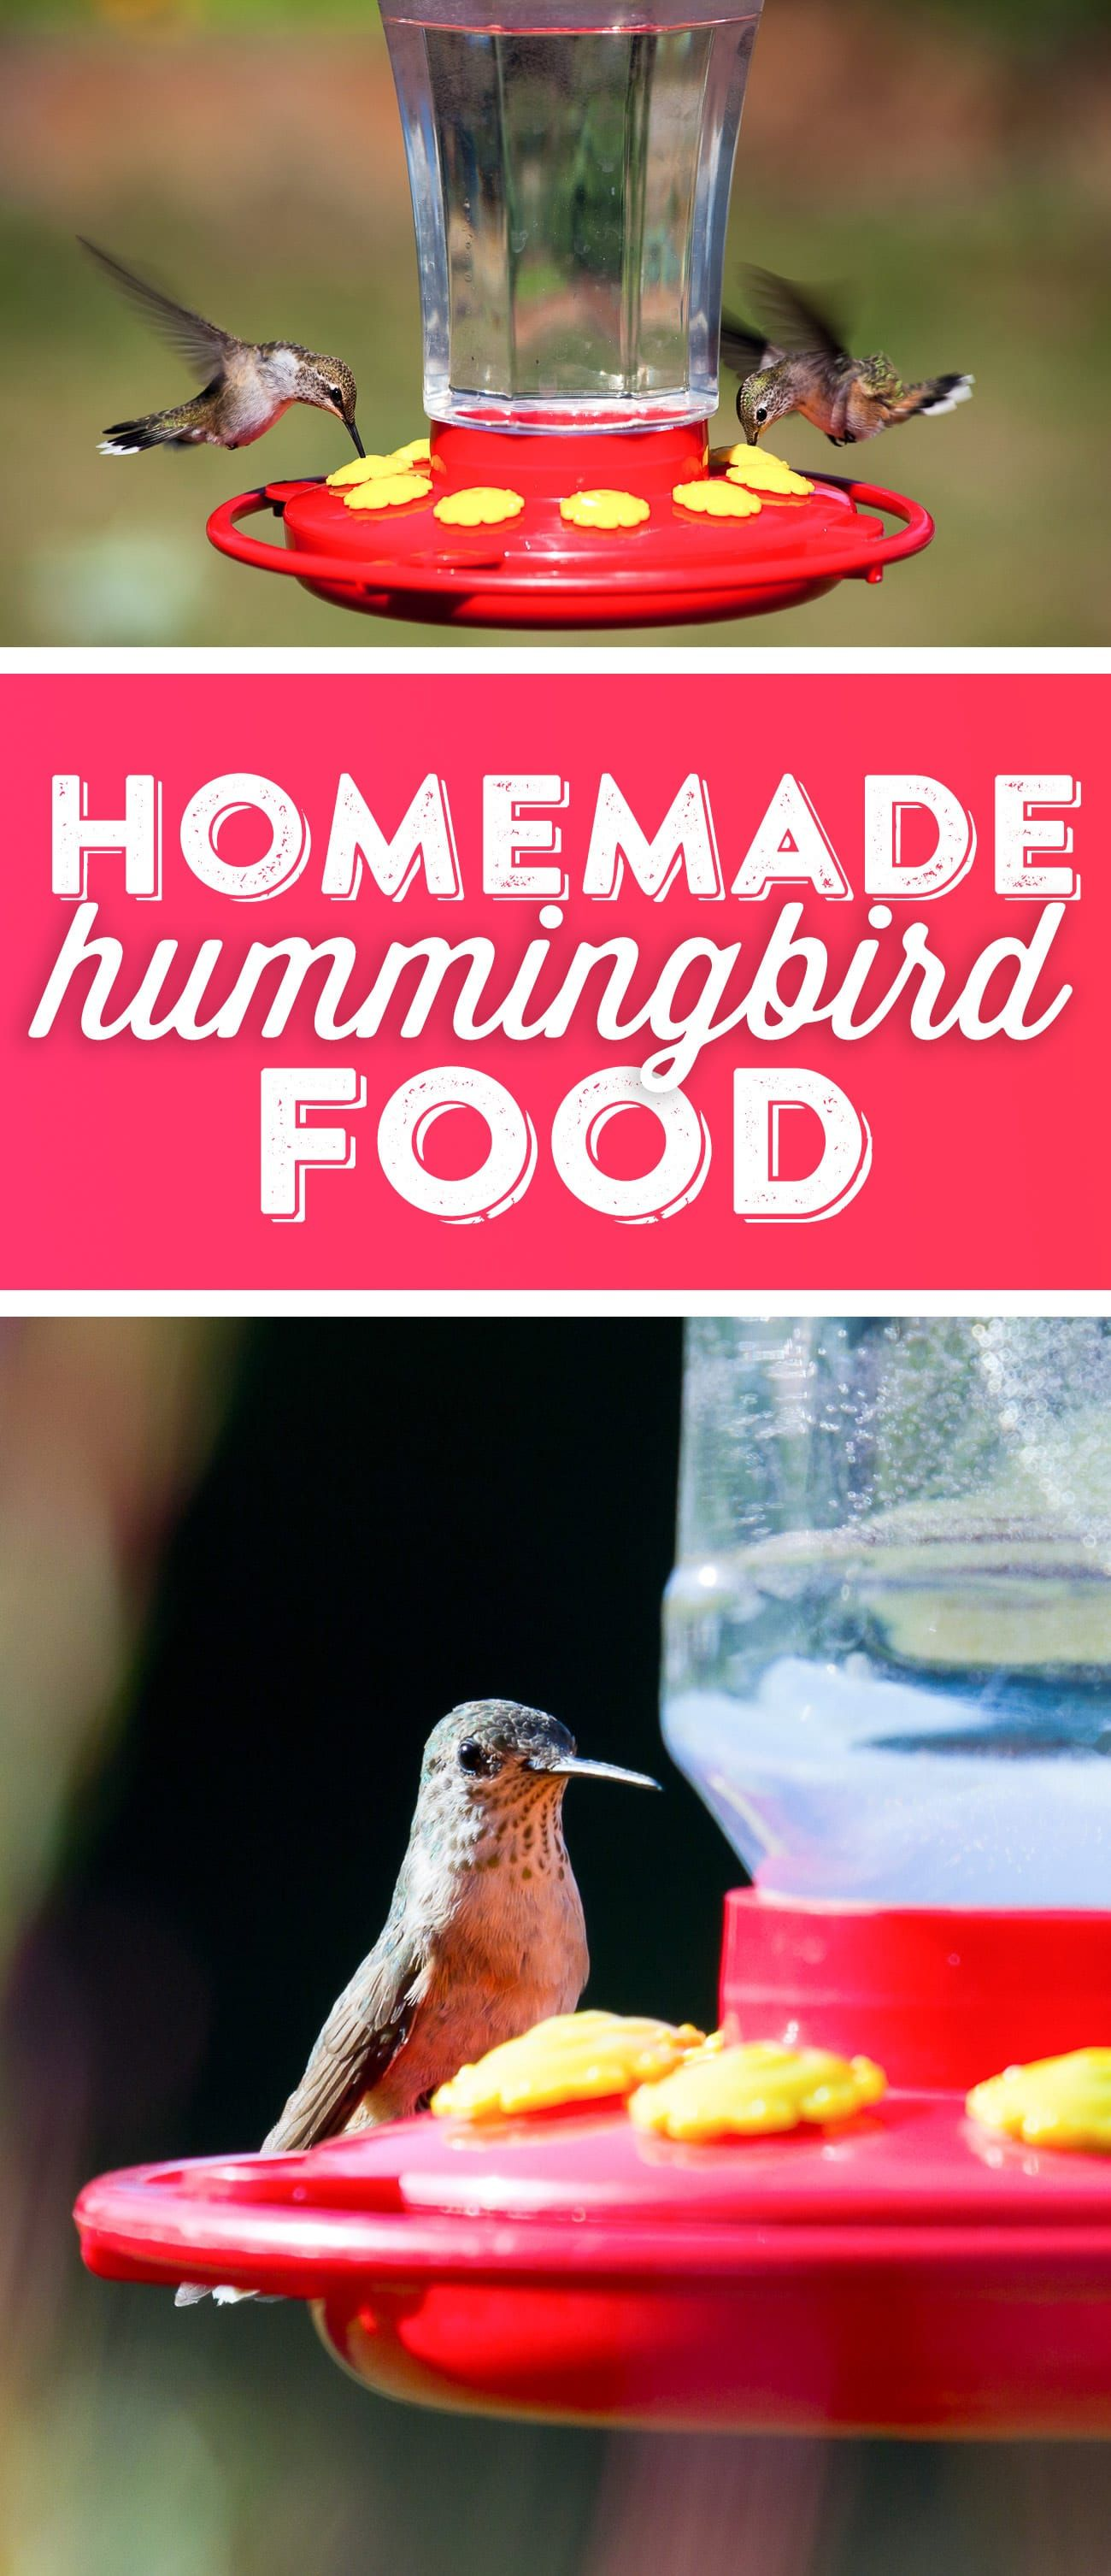 Hummingbird Food Recipe Hummingbird Food Homemade Hummingbird